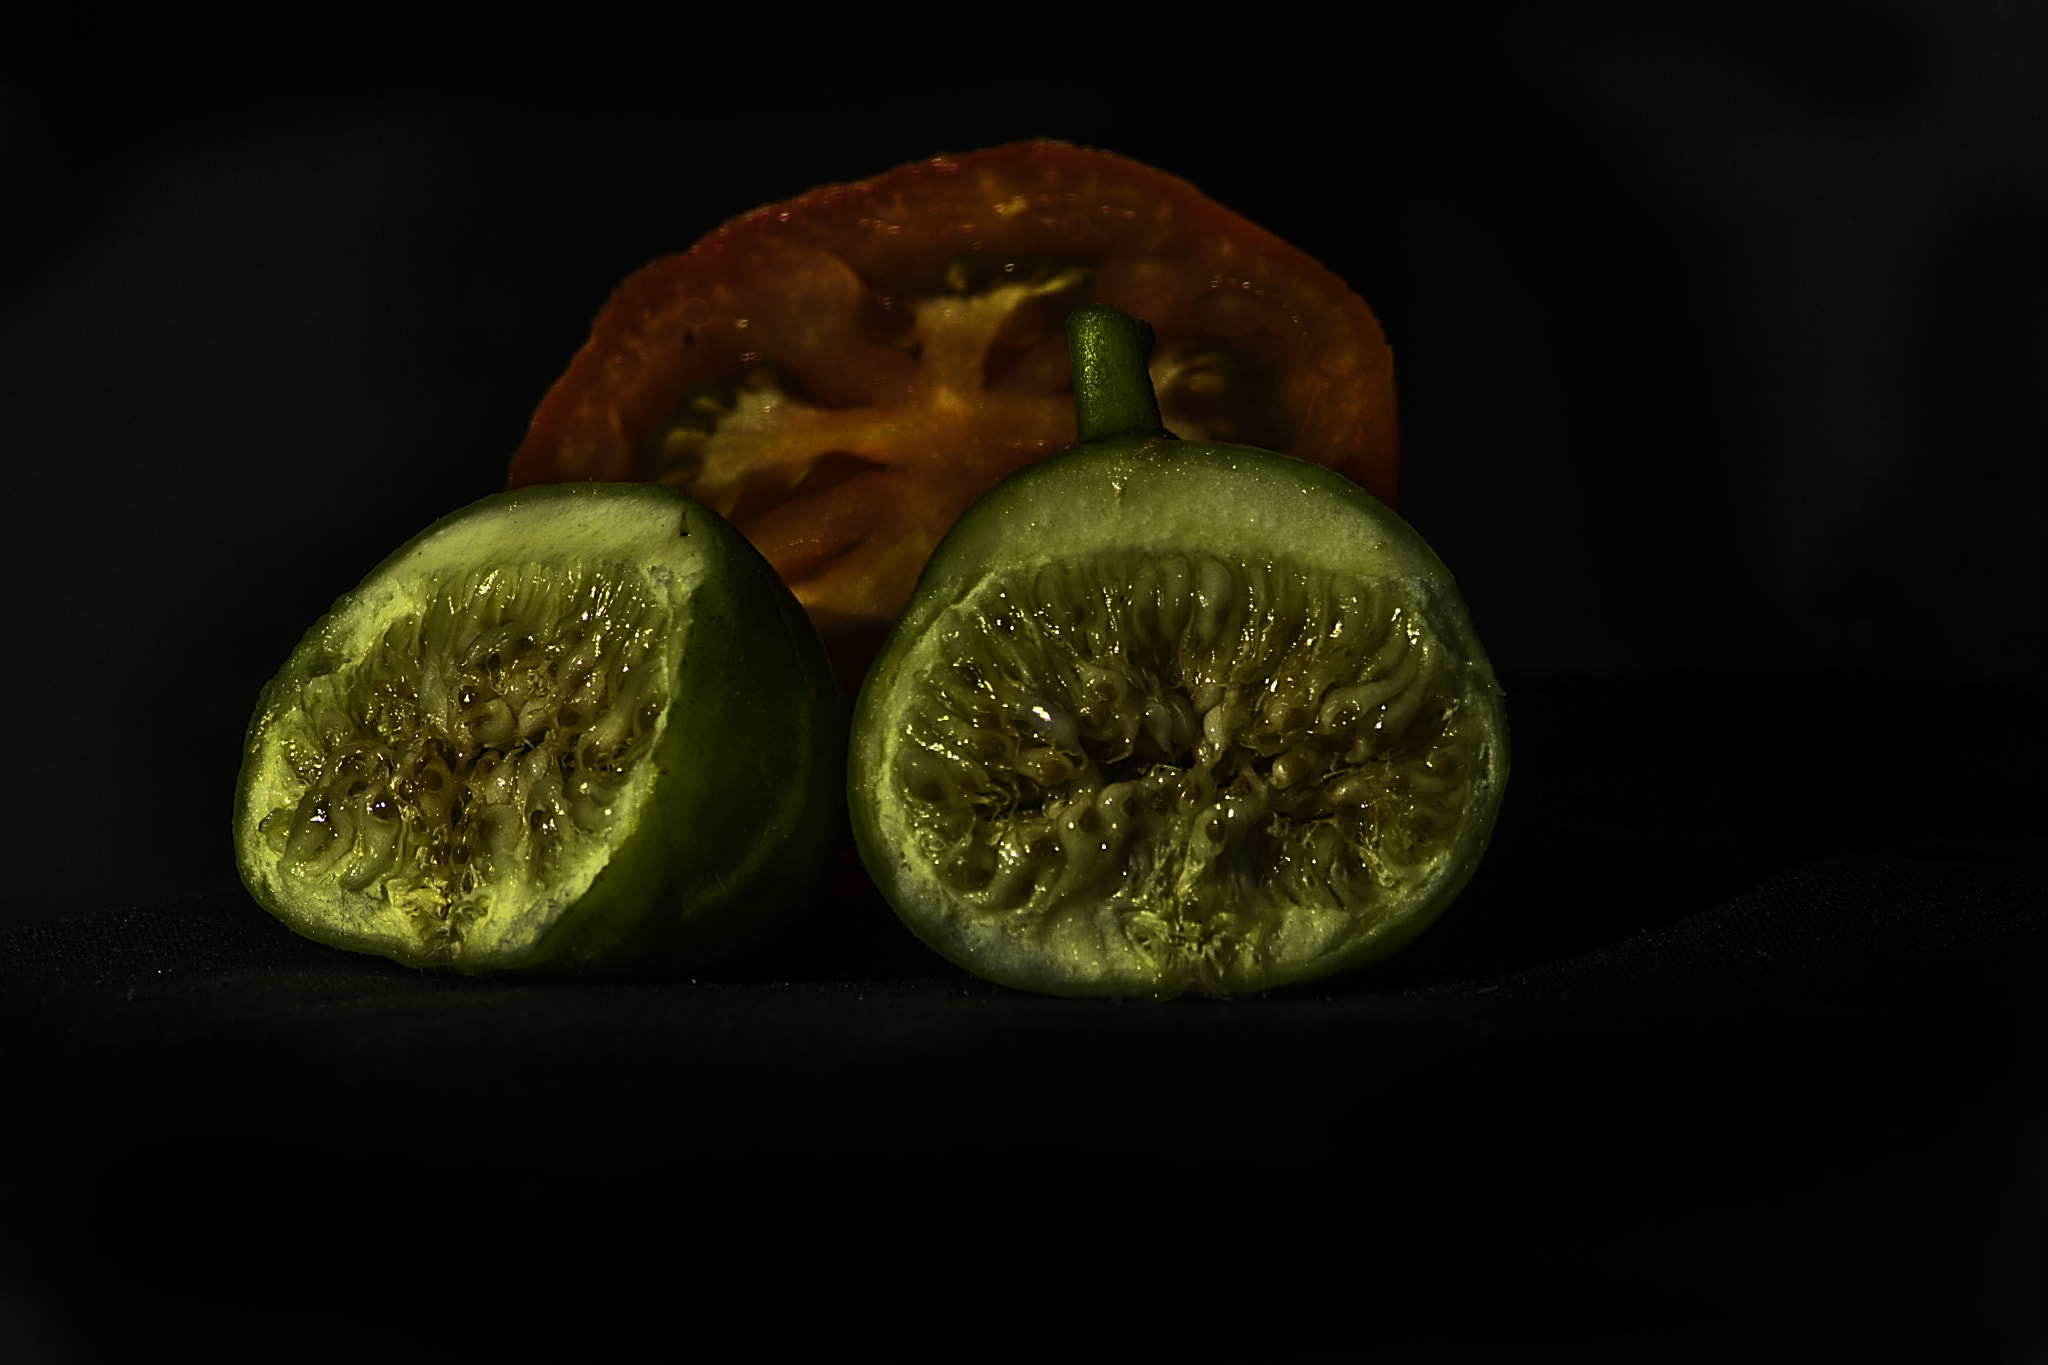 Photograph FIGS AND TOMATO by manuel mena on 500px